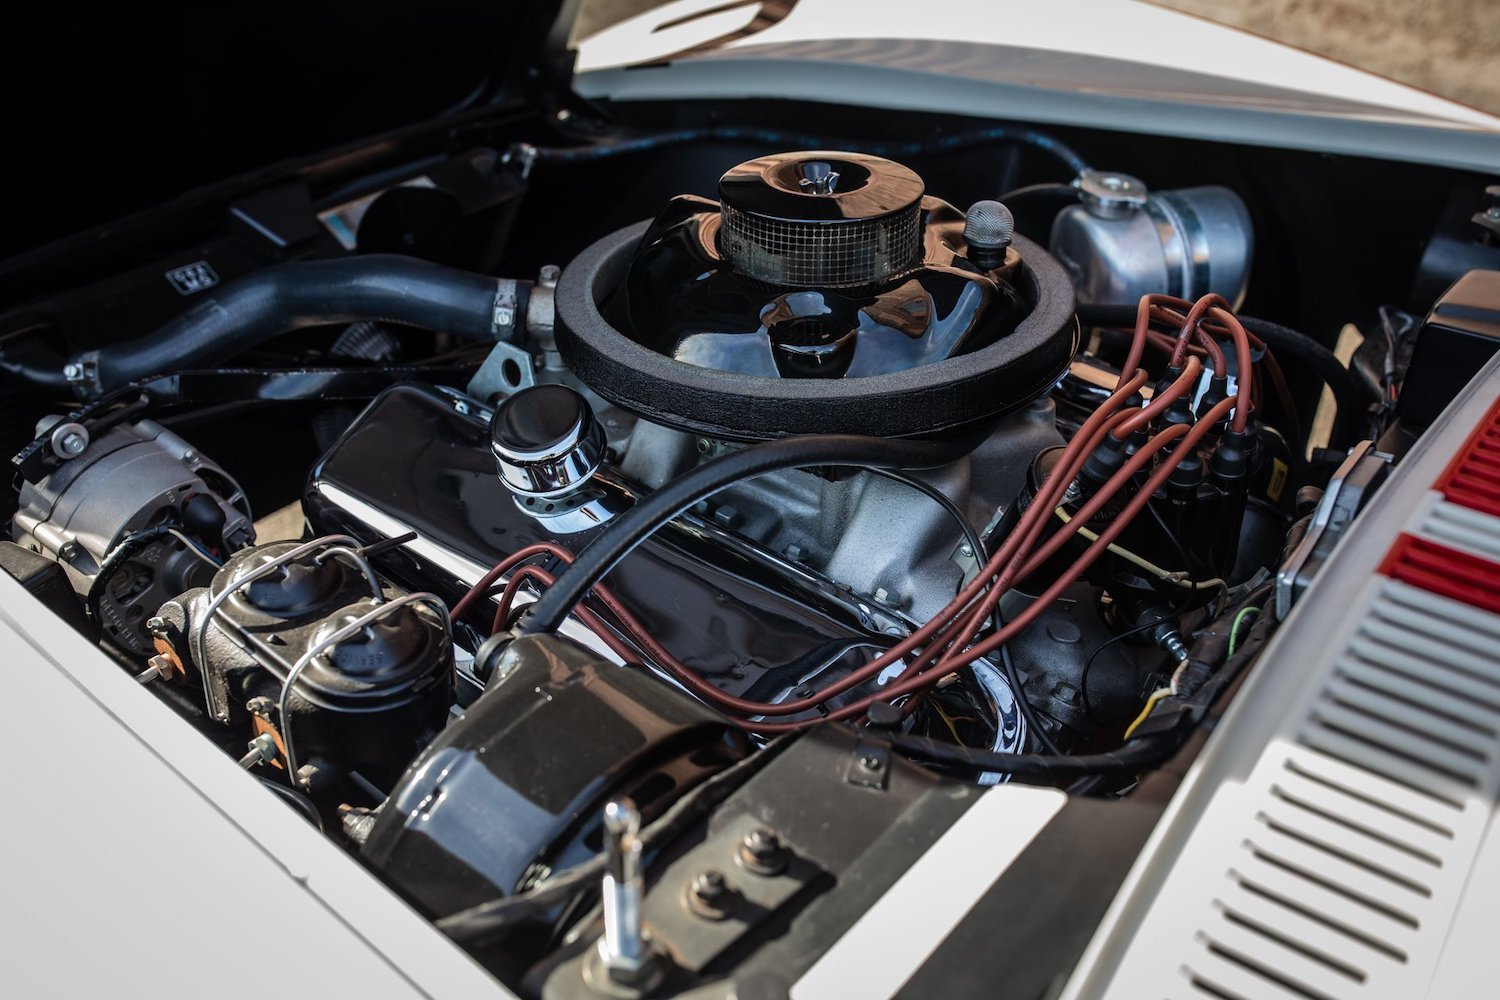 1968 Chevrolet Sunray DX L88 Yenko Racer engine